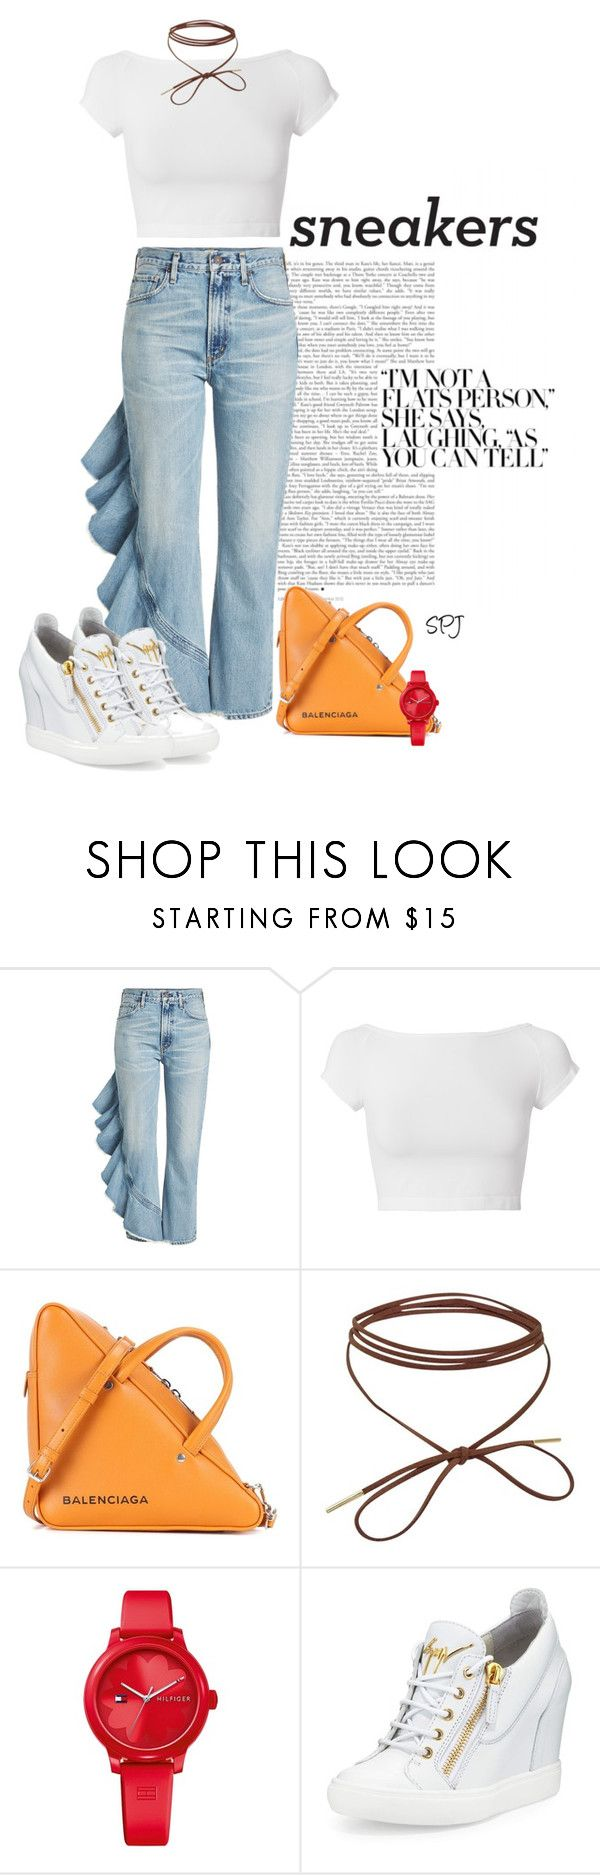 """White Wedge Sneakers"" by s-p-j ❤ liked on Polyvore featuring Citizens of Humanity, Helmut Lang, Balenciaga, Tommy Hilfiger and Giuseppe Zanotti"